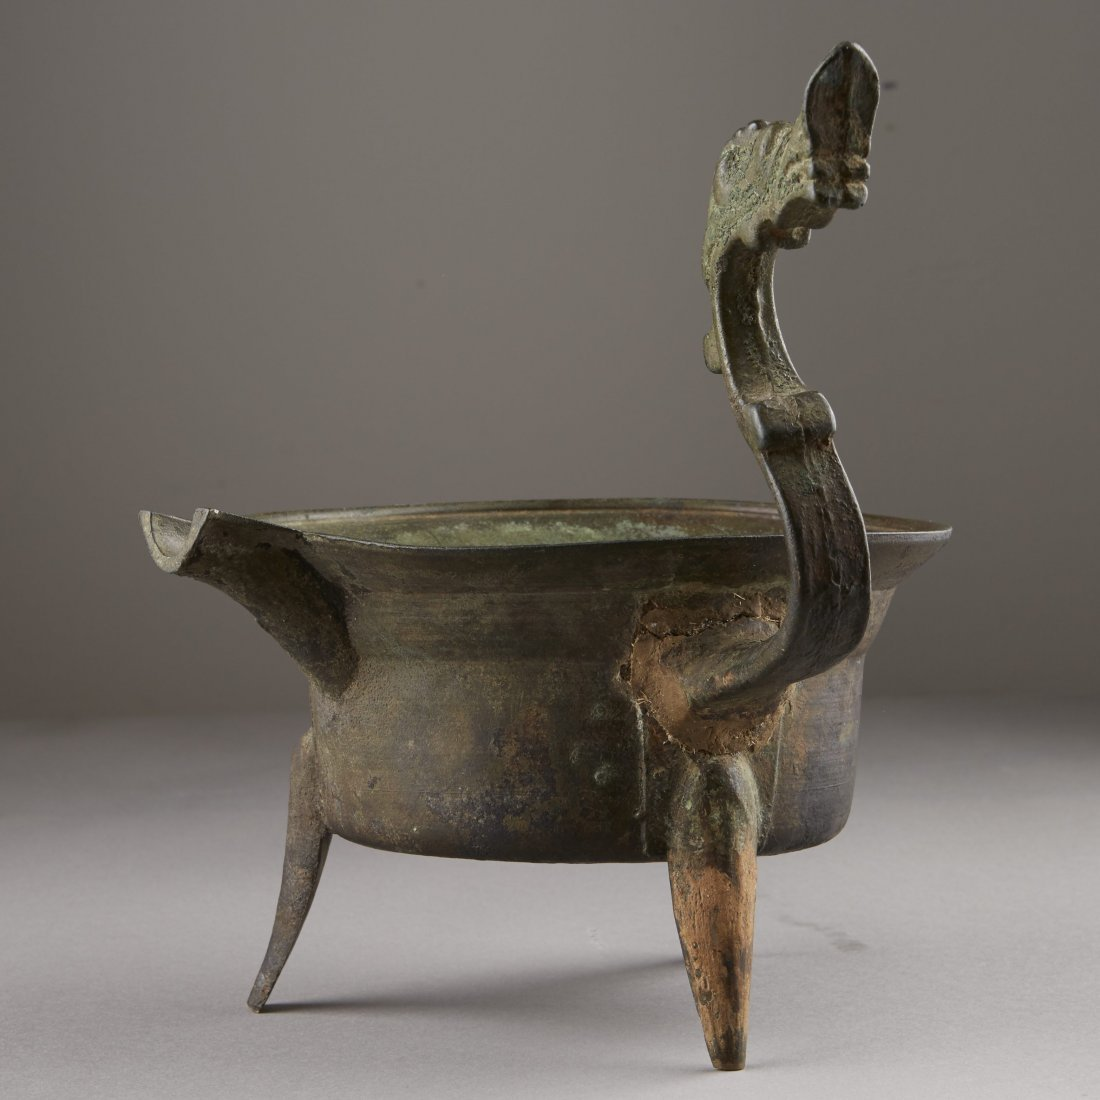 Chinese Bronze Han Dynasty Tripod Cooking Vessel - 2